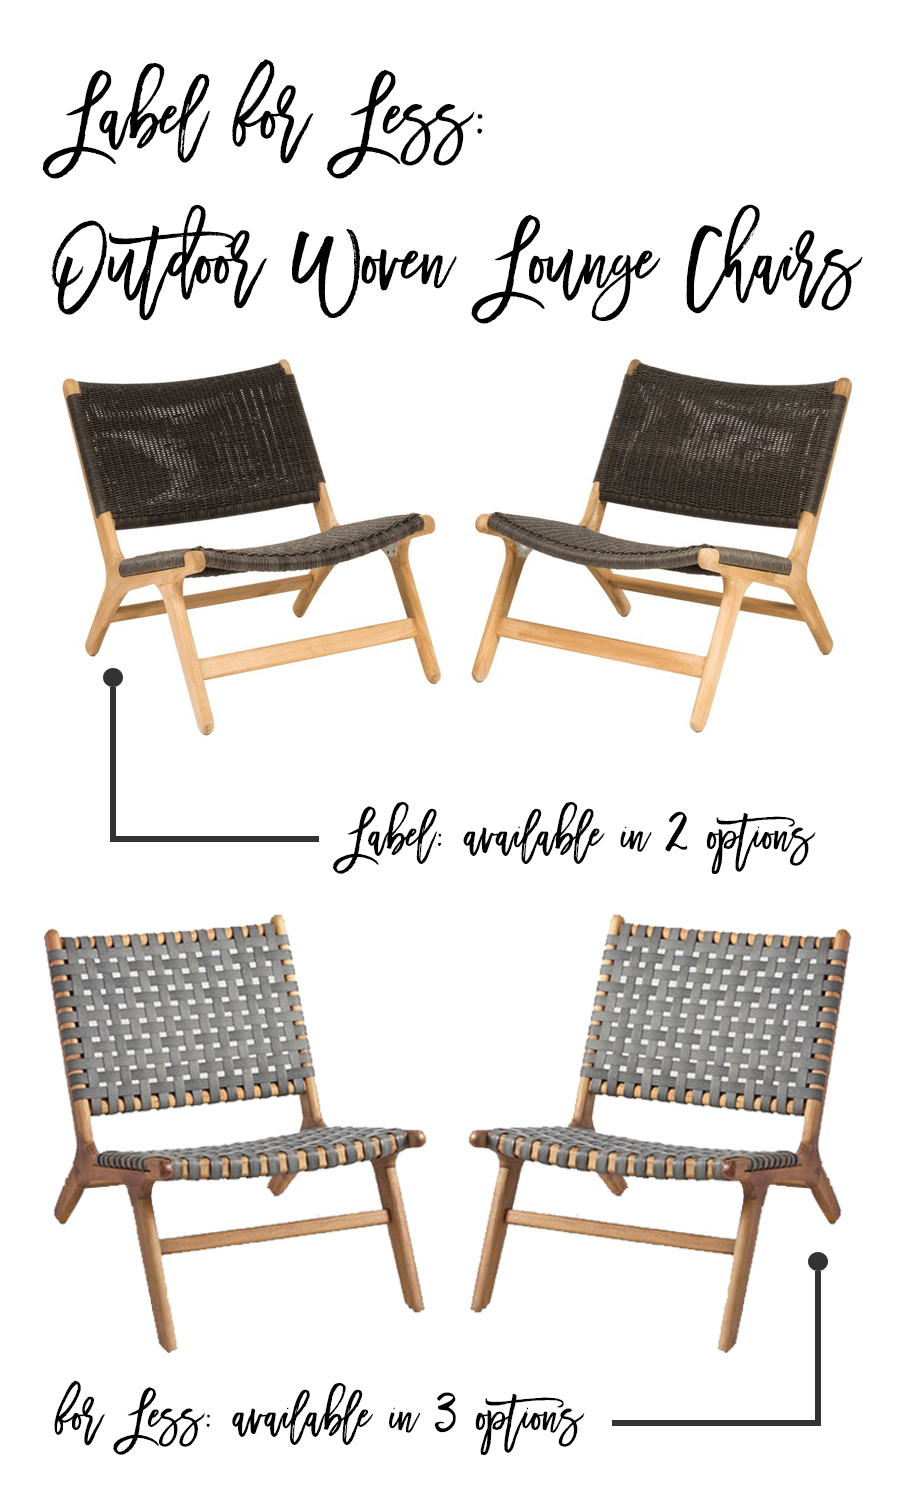 Astonishing Label For Less Outdoor Lounge Chairs Have Need Want Spiritservingveterans Wood Chair Design Ideas Spiritservingveteransorg